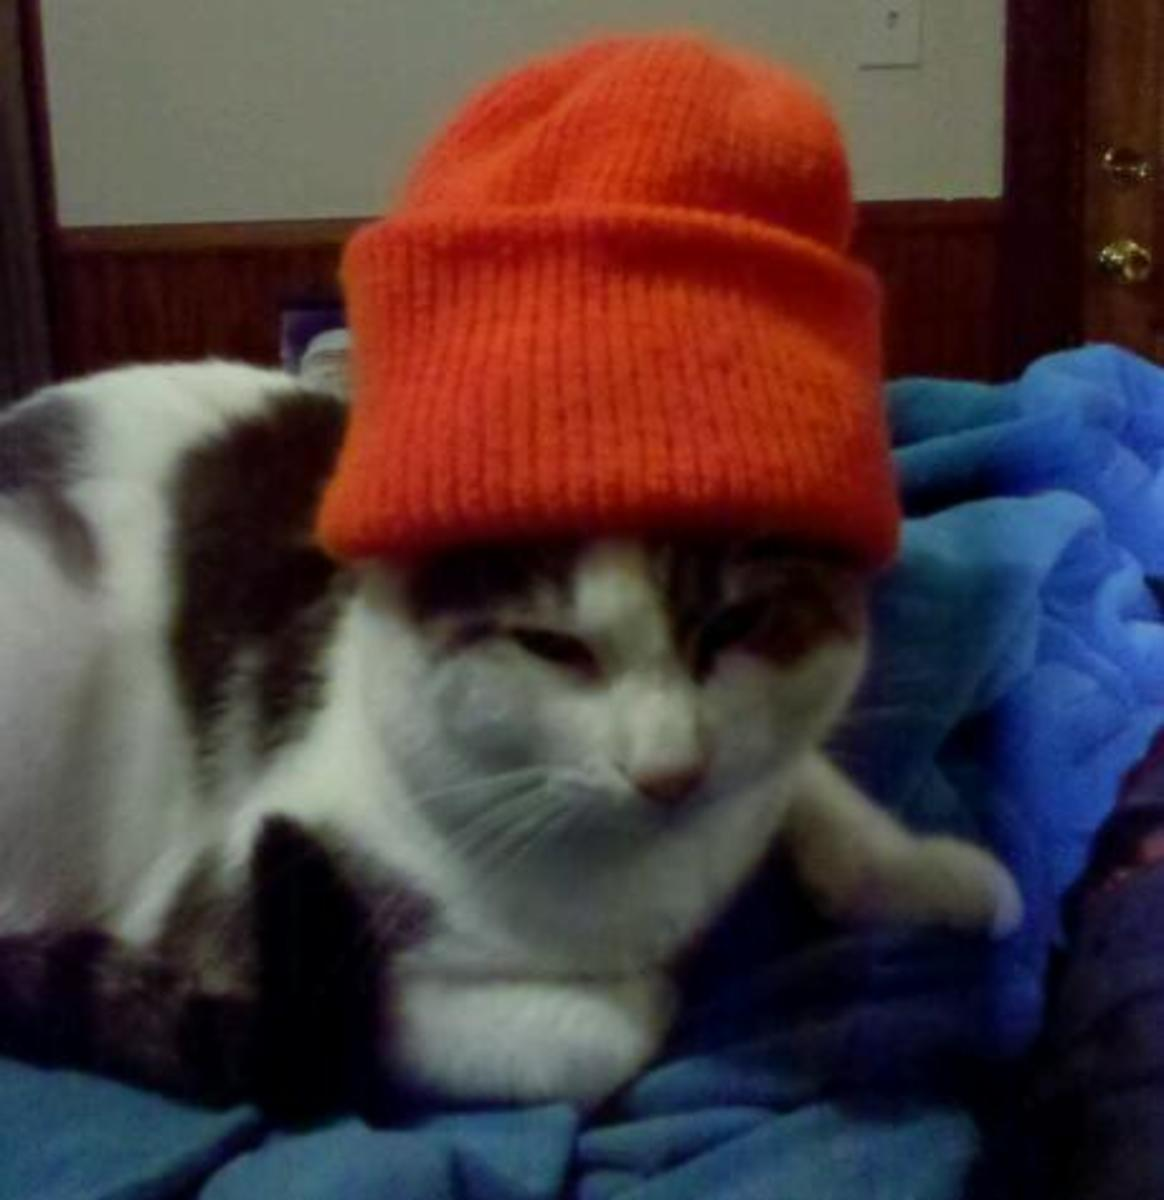 Soda Pop wearing a hunting hat; not impressed!